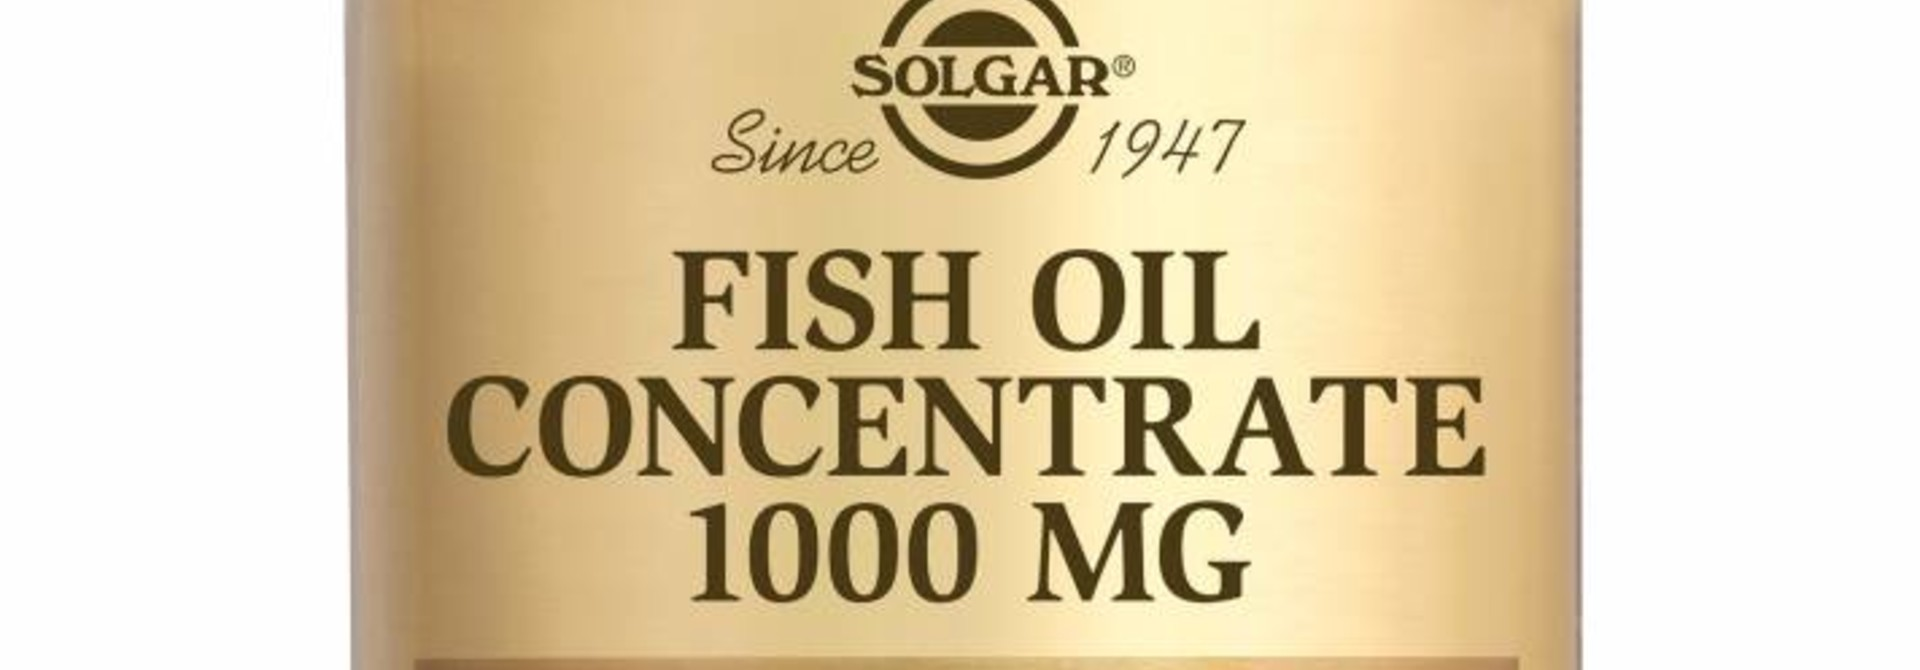 Fish Oil Concentrate 1000 mg 120 softgels